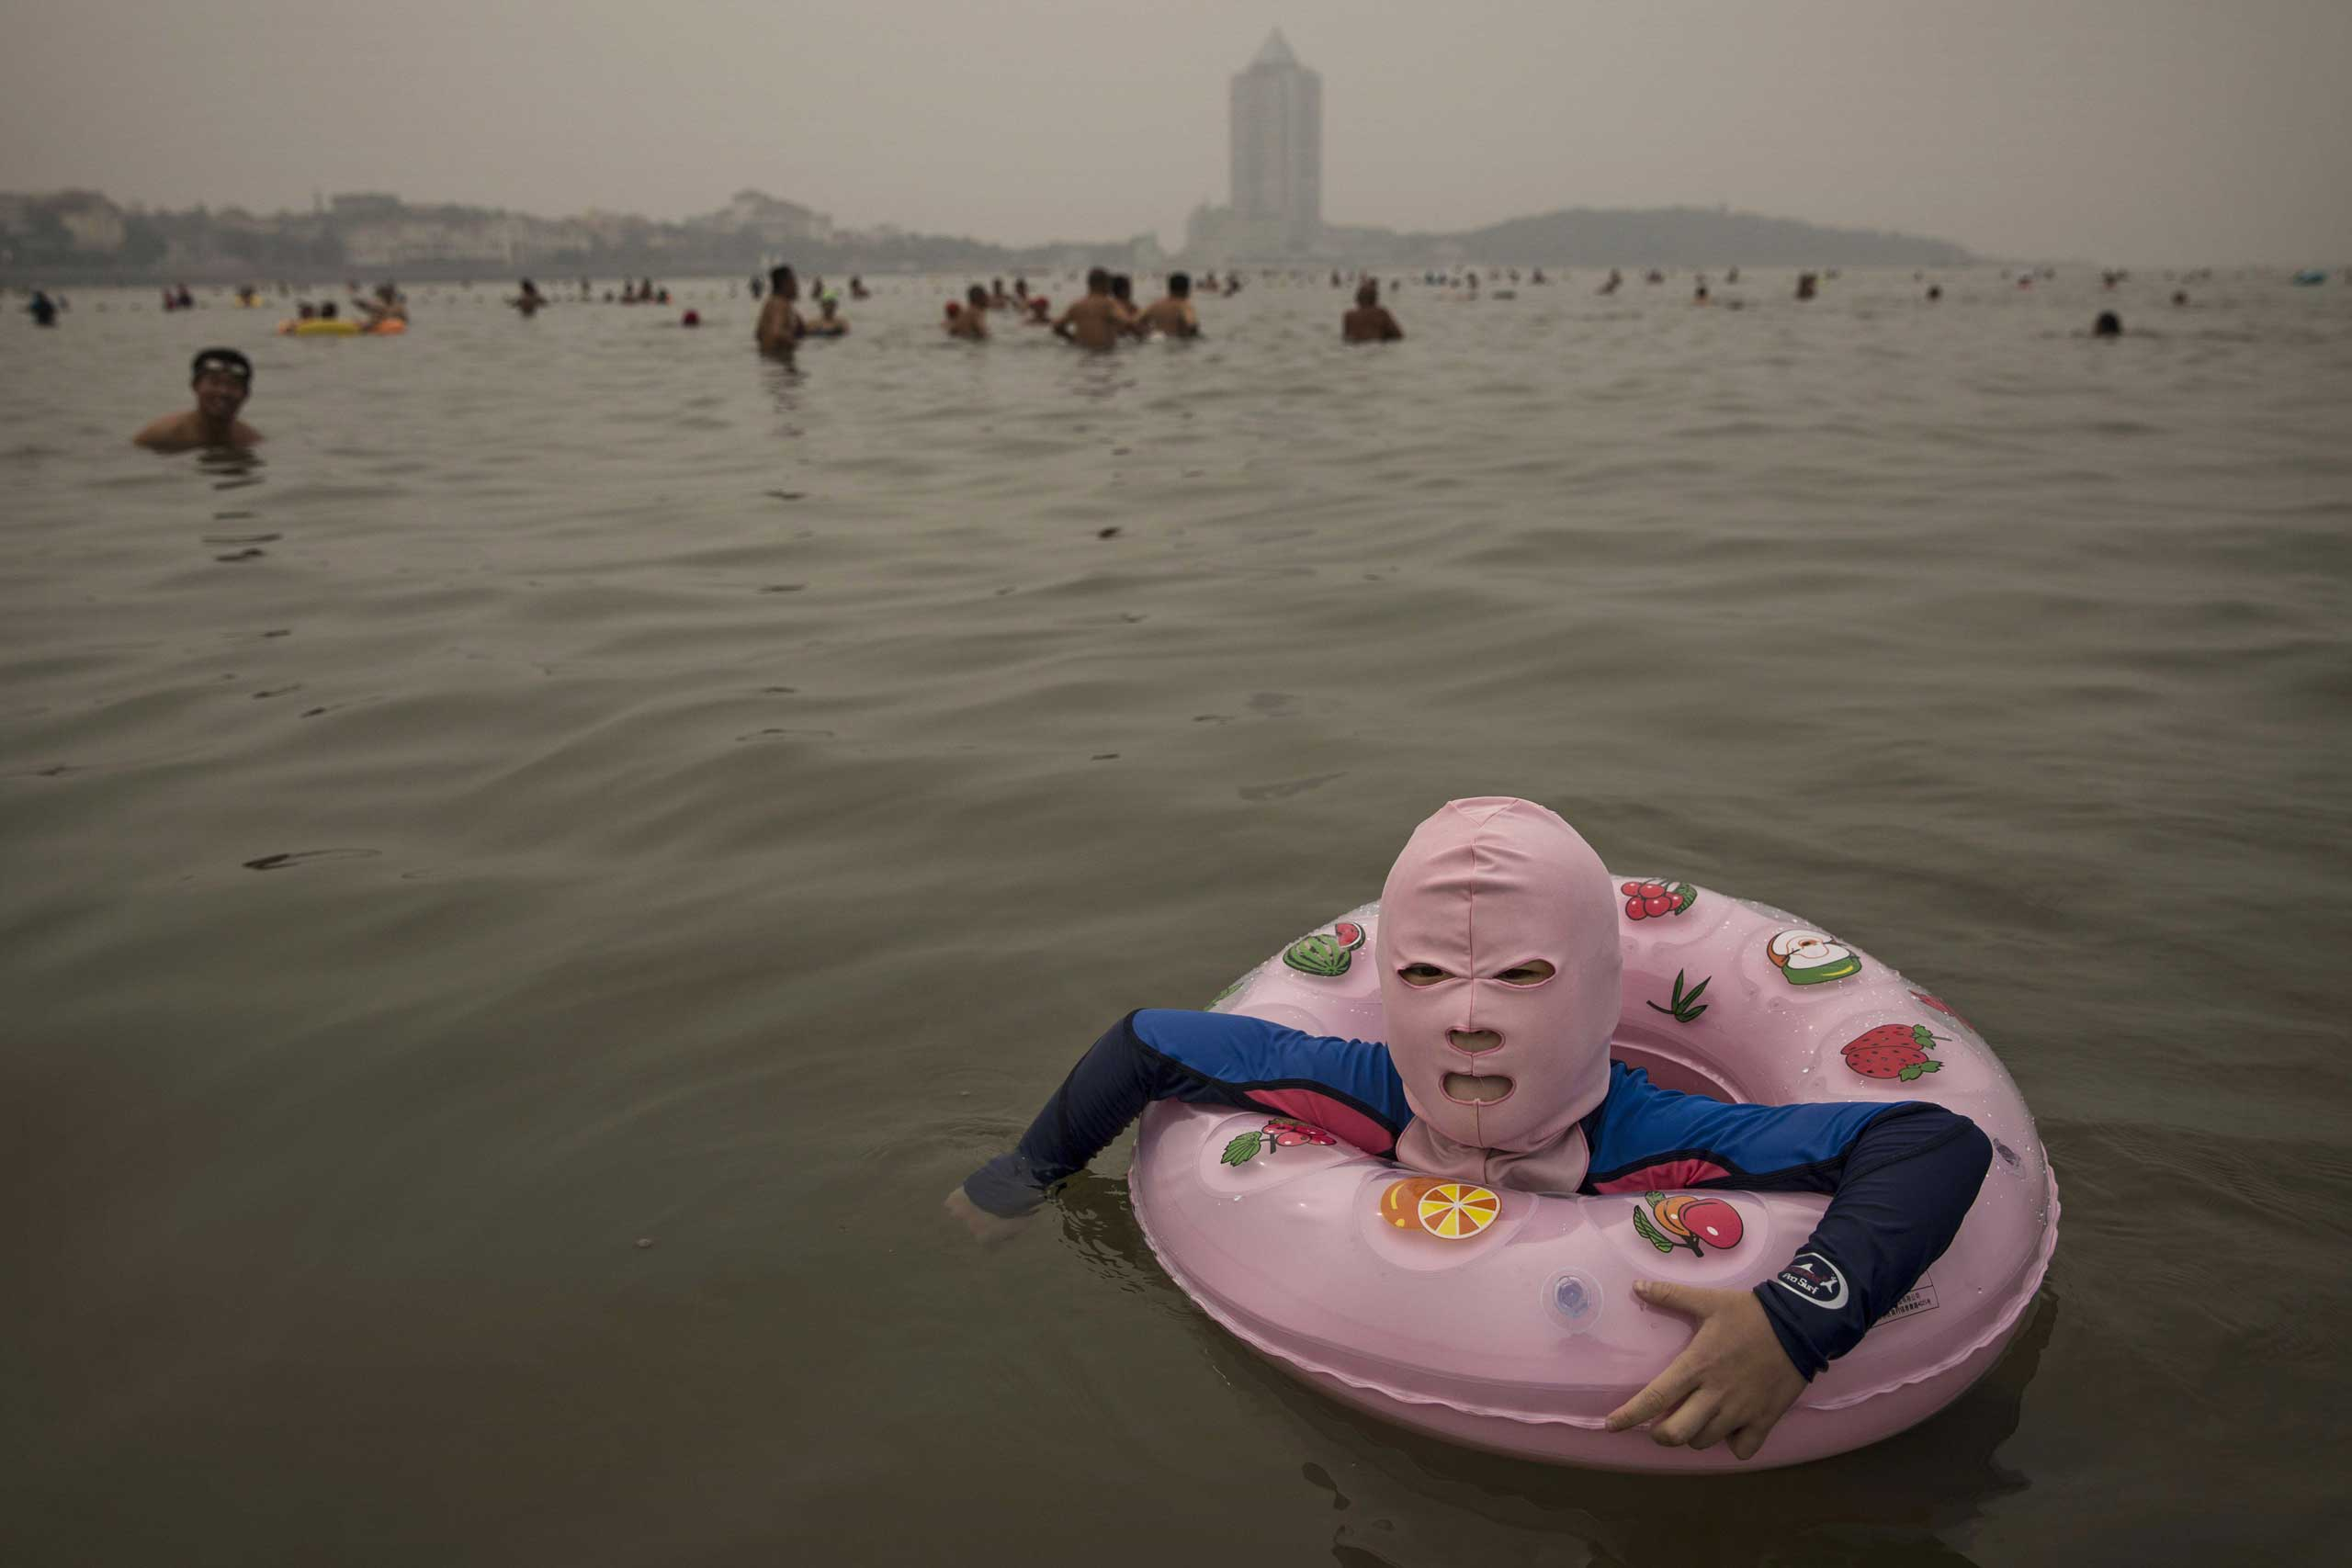 A Chinese girl wears a face-kini to protect her from jellyfish stings, algae and the sun's ultraviolet rays as she floats in the water on the Yellow Sea in Qingdao, China, Aug. 21, 2014.